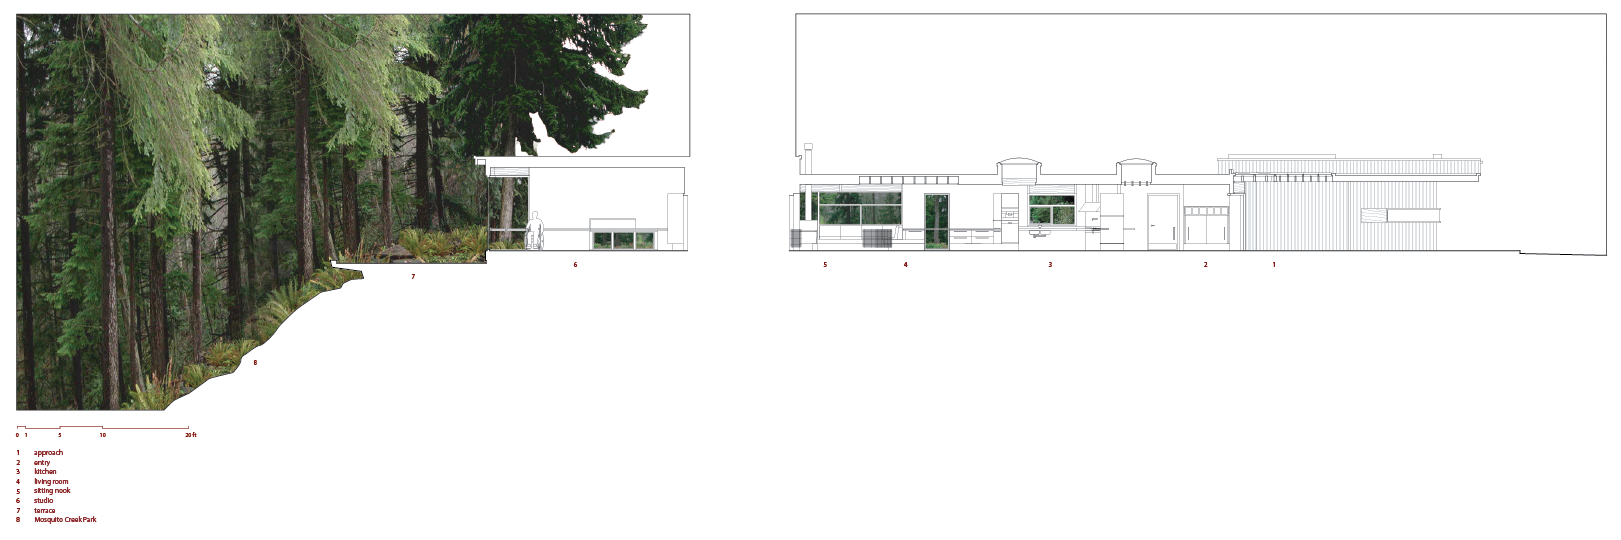 House elevation with rendering of the forest on as the propertly slopes down to the left